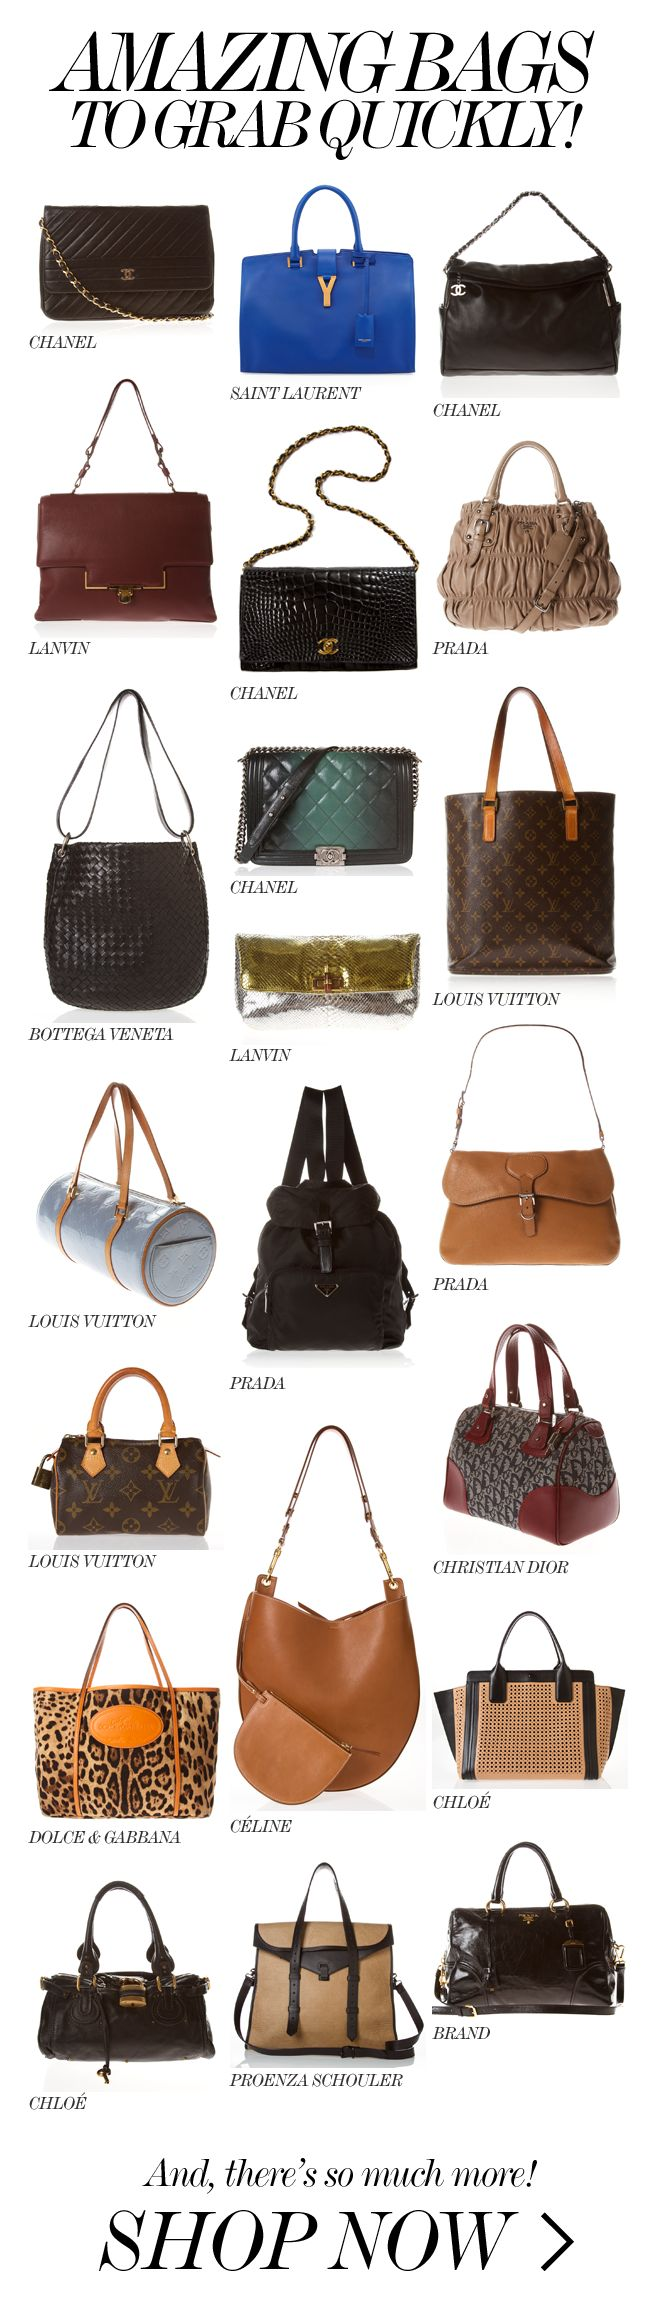 AMAZING DESIGNER BAGS // Chanel, Saint Laurent, C�line, Louis Vuitton more.